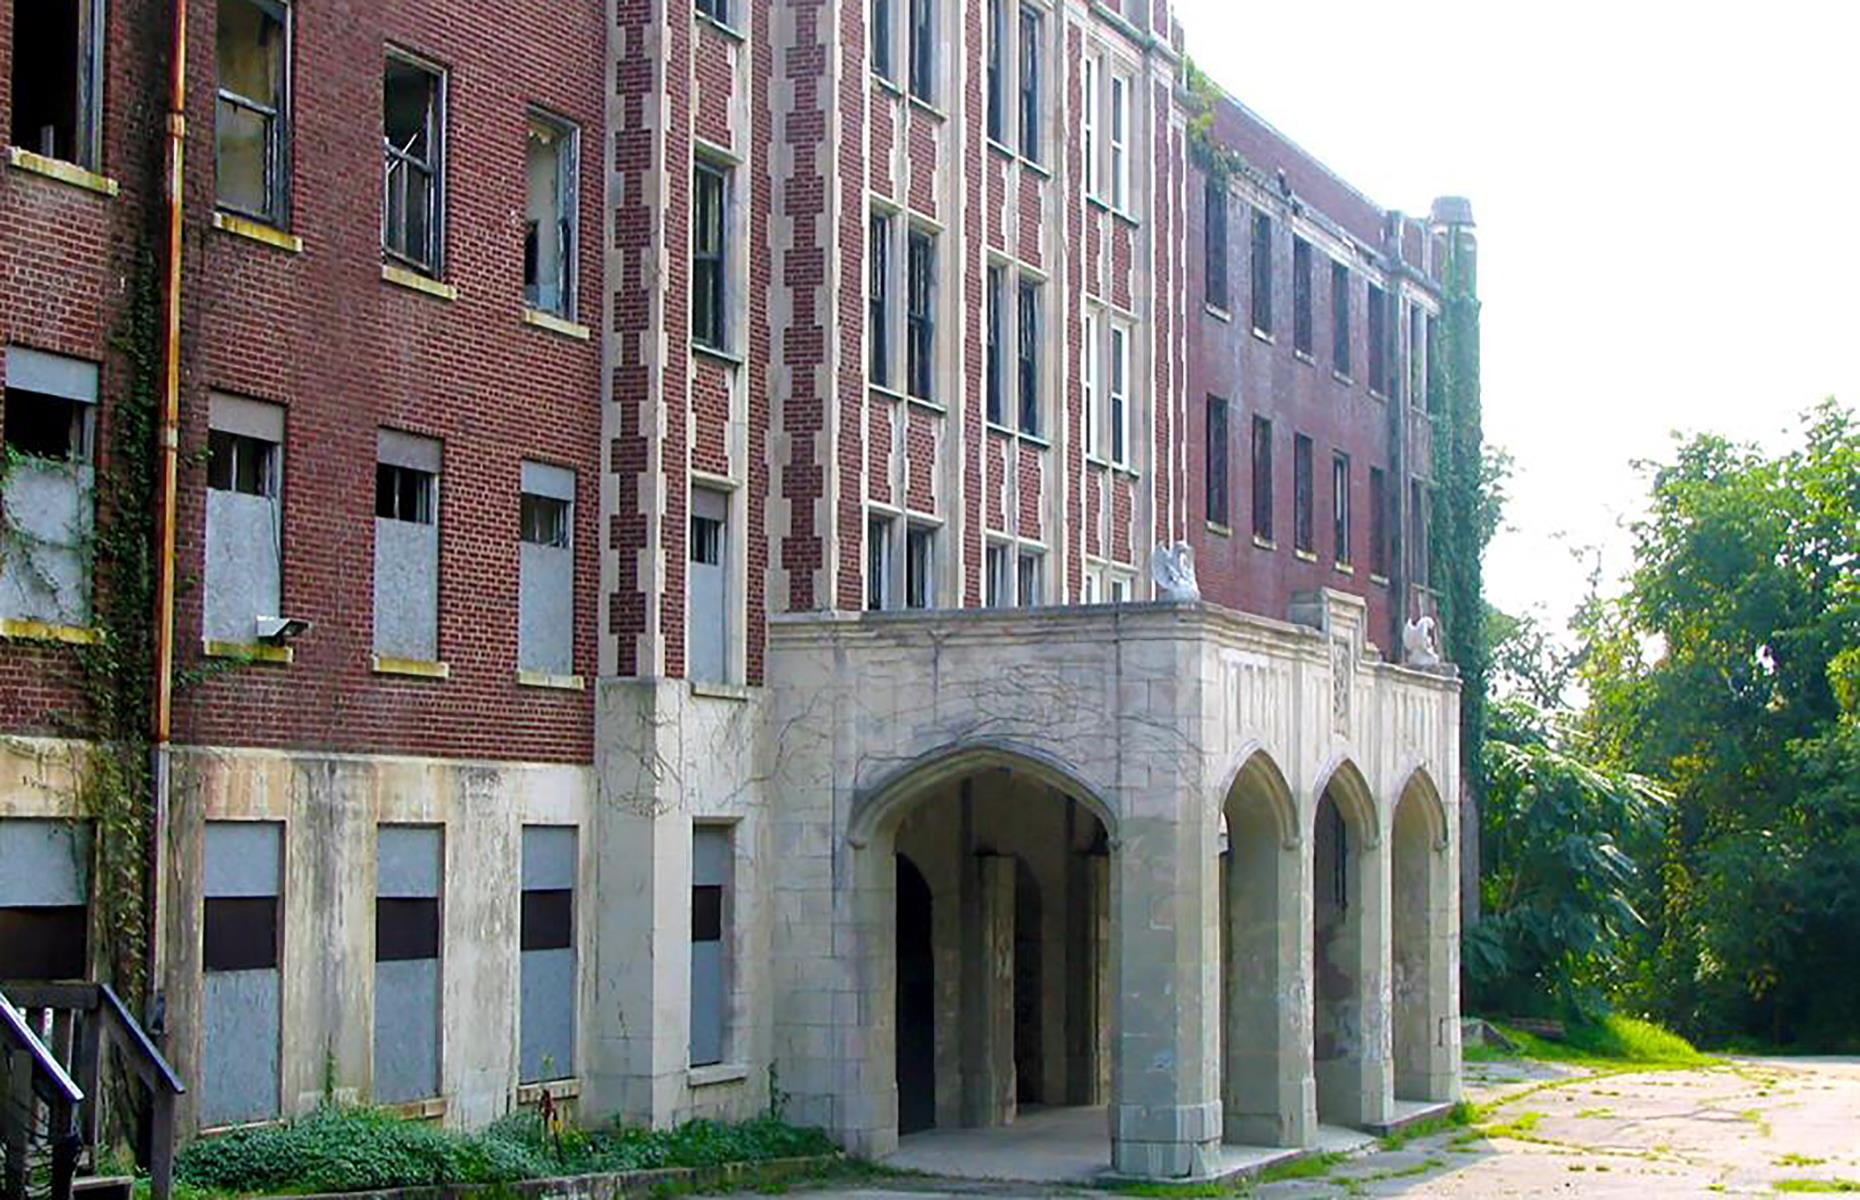 Slide 34 of 101: A grand building in the city of Louisville, Waverly Hills Sanatorium was established in the 1920s as a treatment center for tuberculosis. By the 1960s, new treatments for the disease had been discovered, and Waverly Hills' services were rendered obsolete.